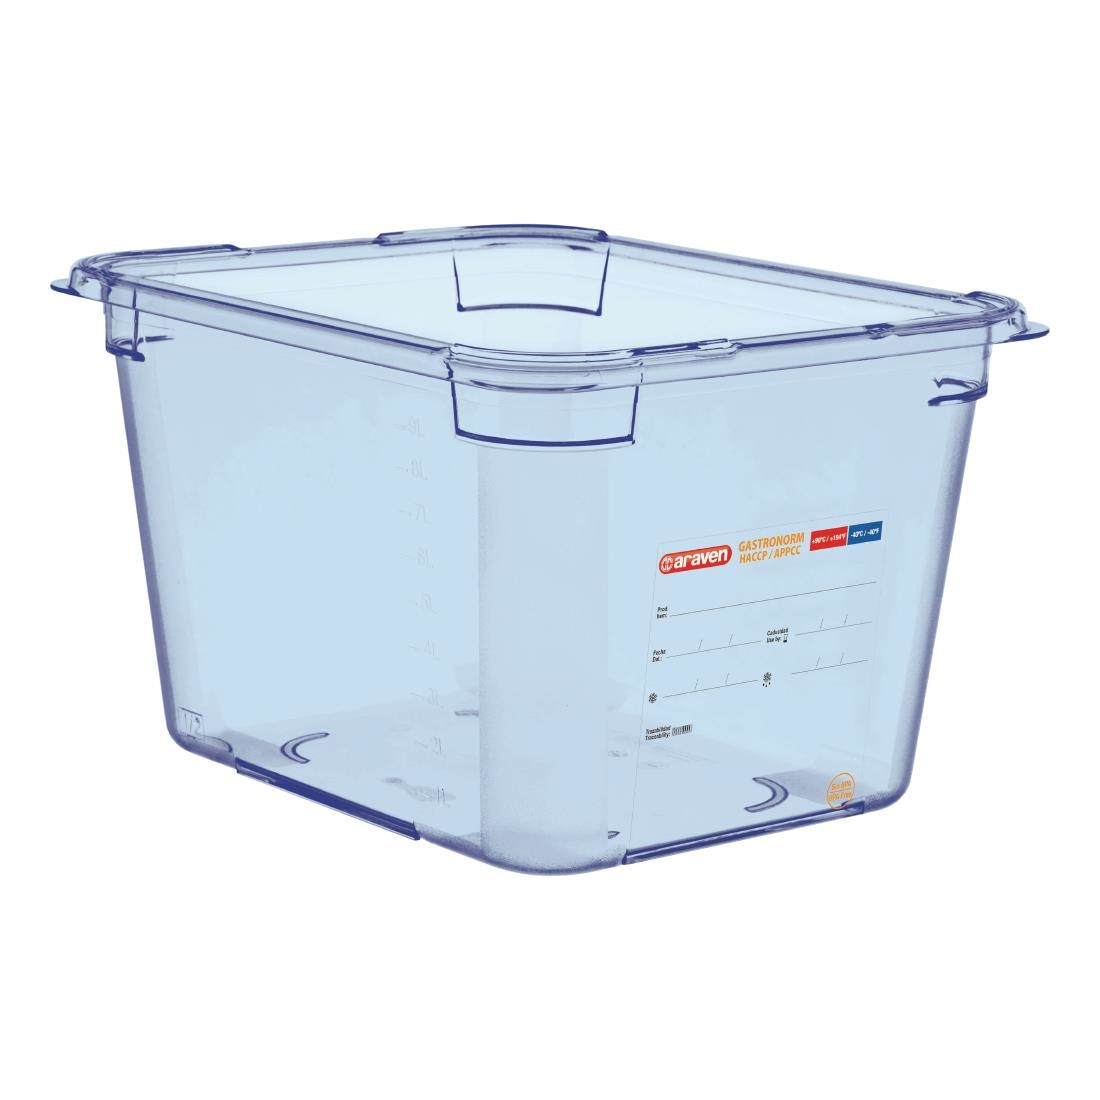 Image of Araven ABS Food Storage Container Blue GN 1/2 200mm